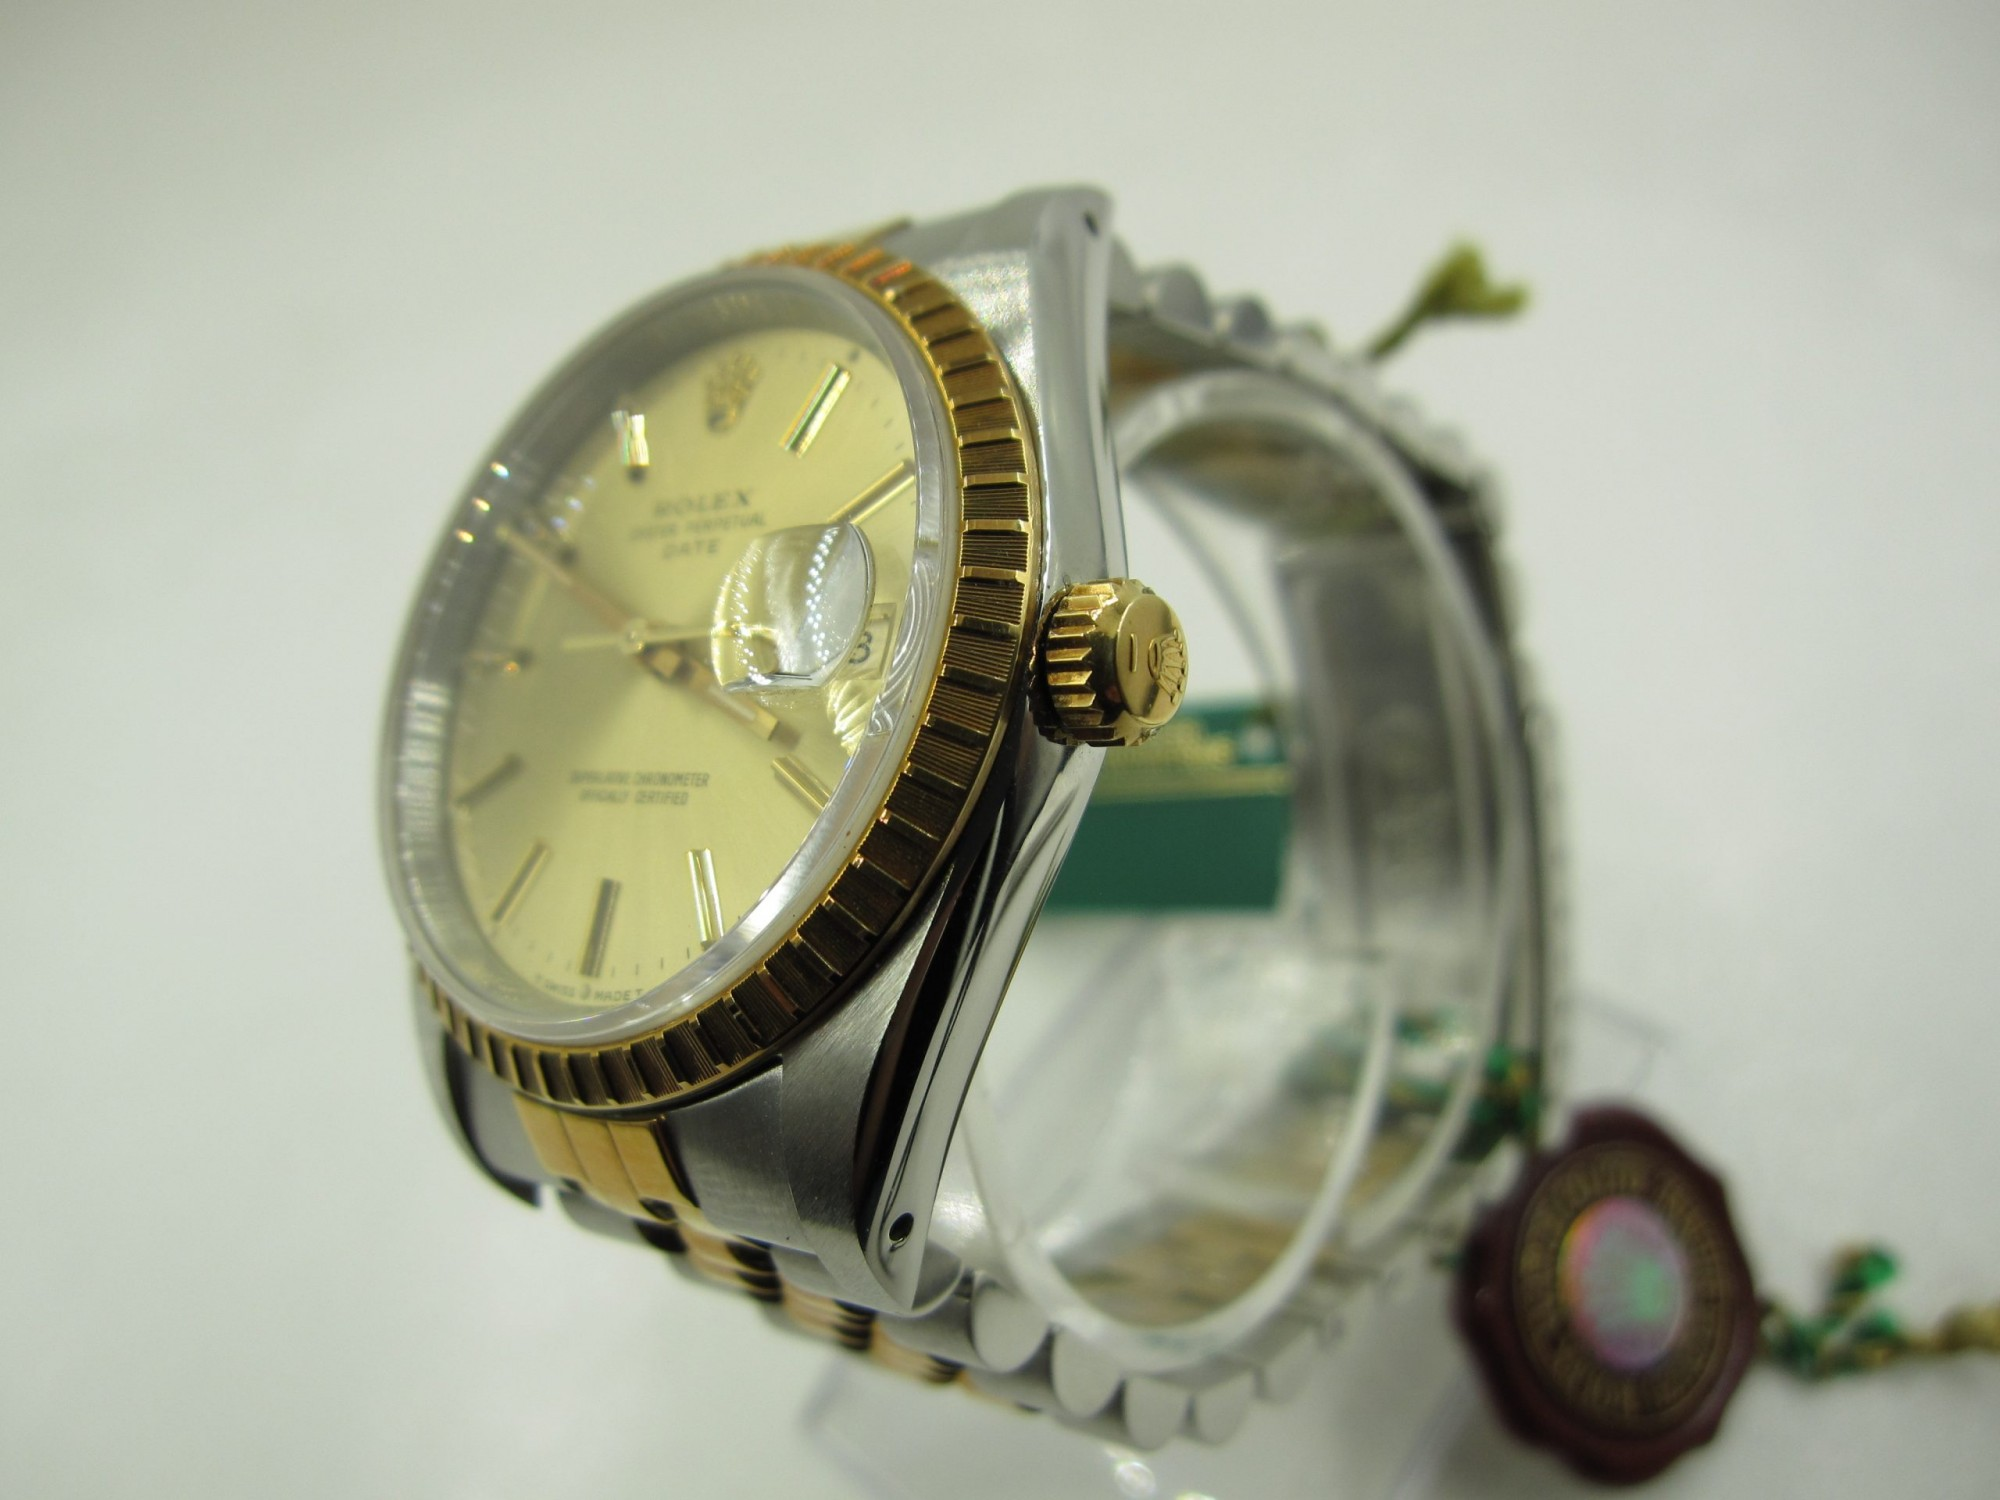 Rolex Oyster Perpetual Date 15223(Pre-Owned Rolex Watch)RL-229